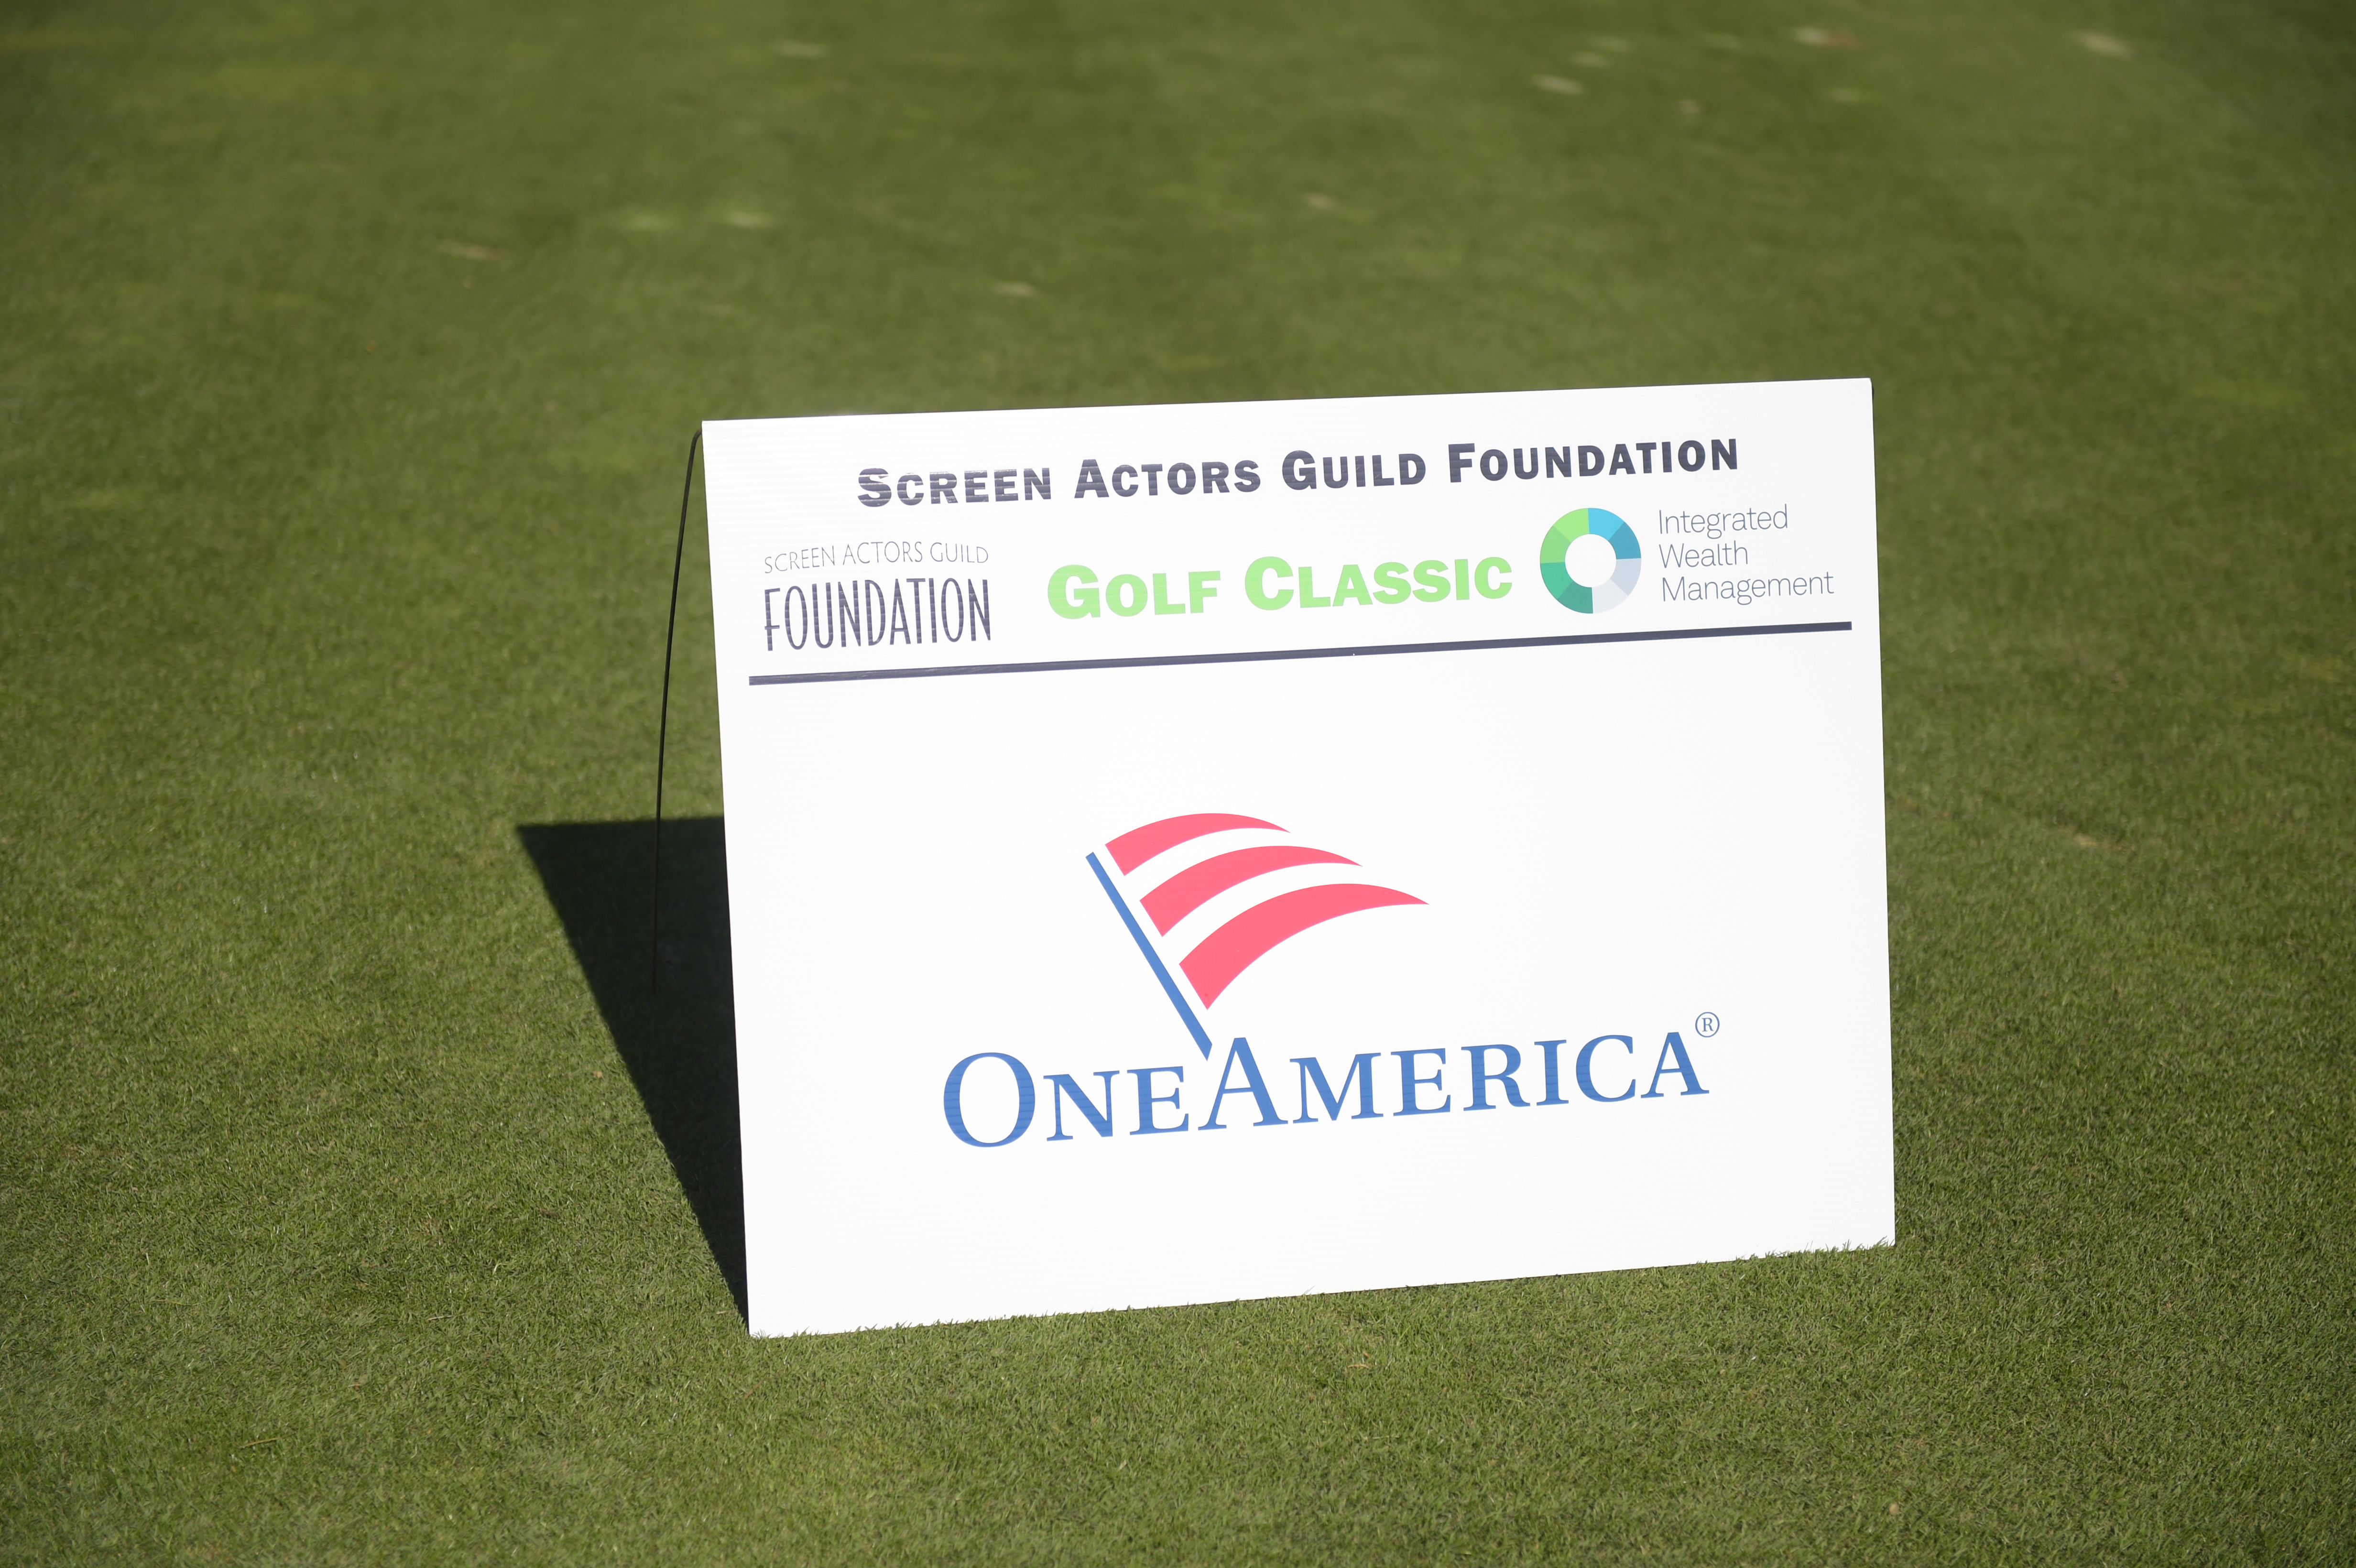 One America sponsors The Screen Actors Guild Foundation's 6th Annual Los Angeles Golf Classic. (Photo by Jason Kempin/Getty Images for The Screen Actors Guild Foundation)